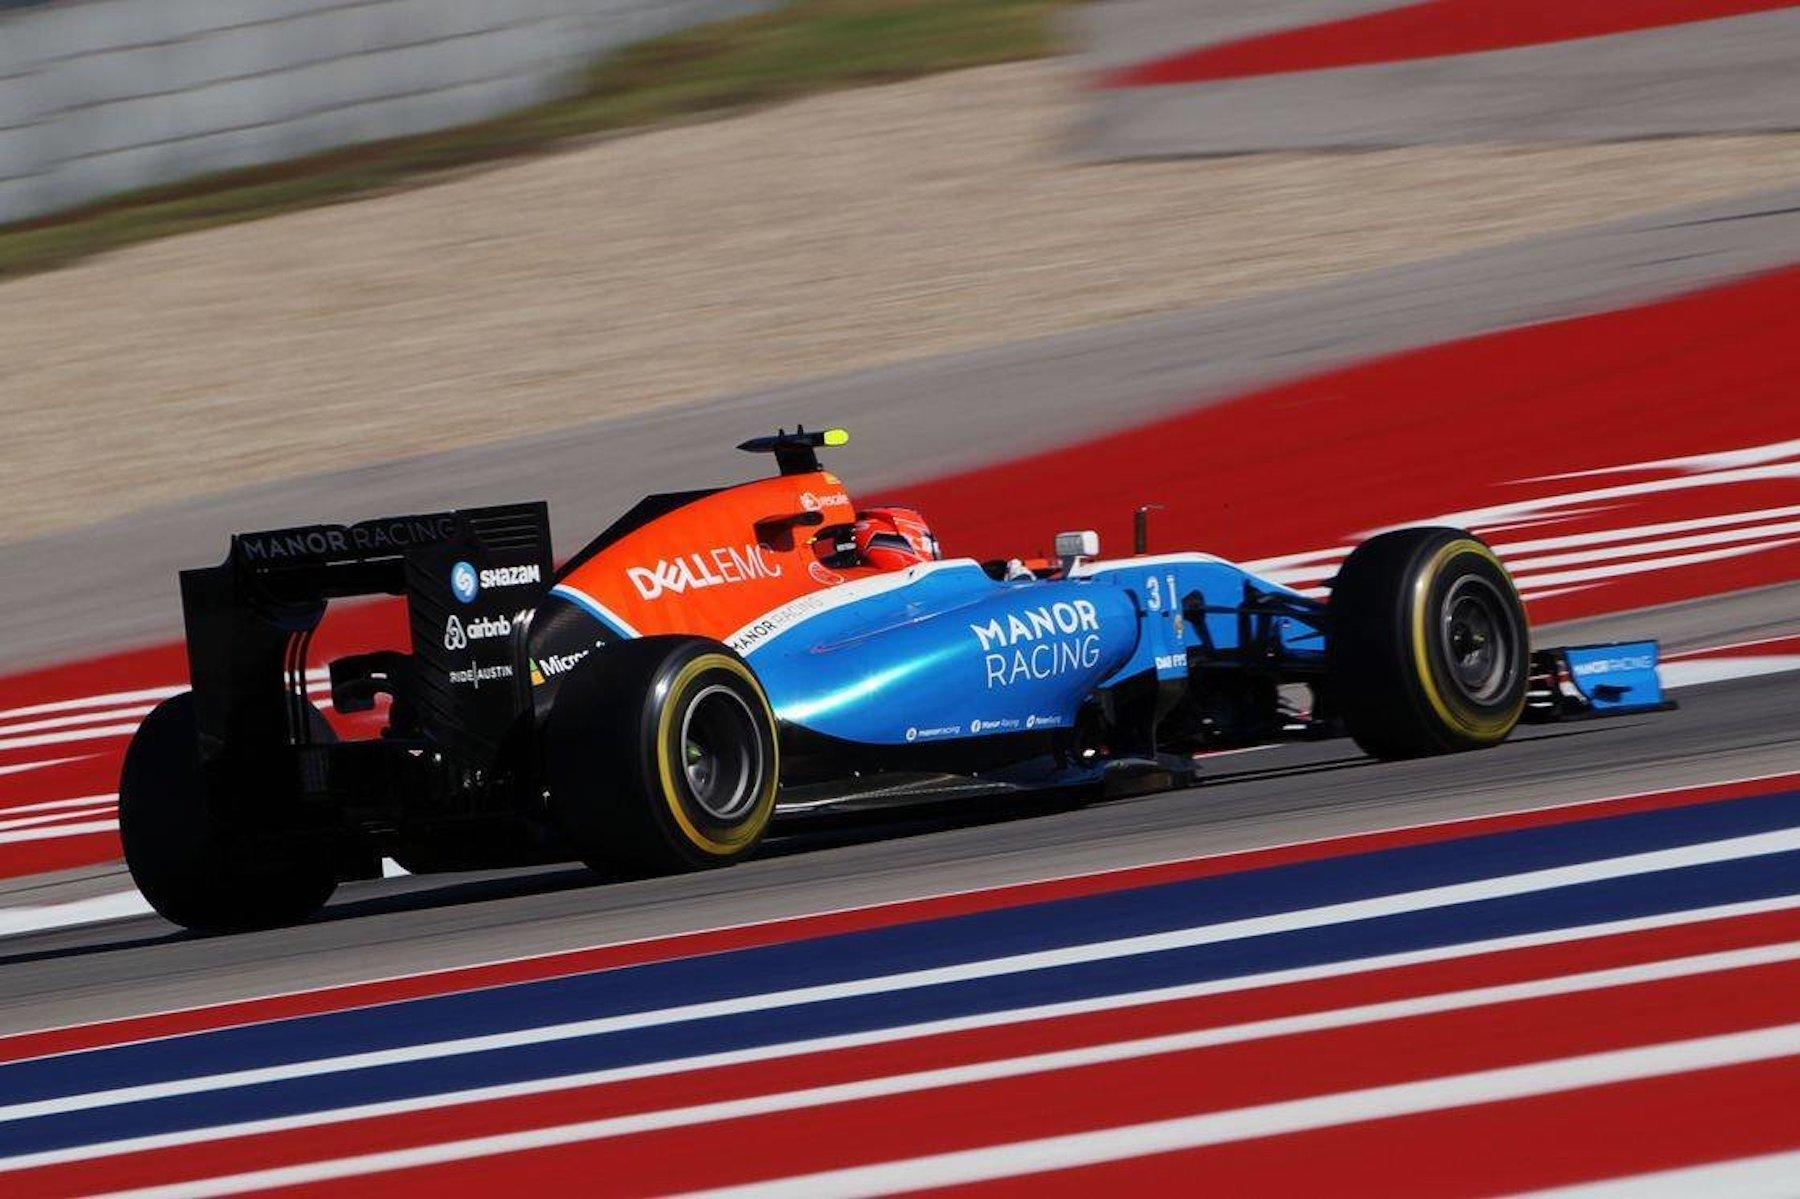 G 2016 Esteban Ocon | Manor | 2016 USGP copy.jpg